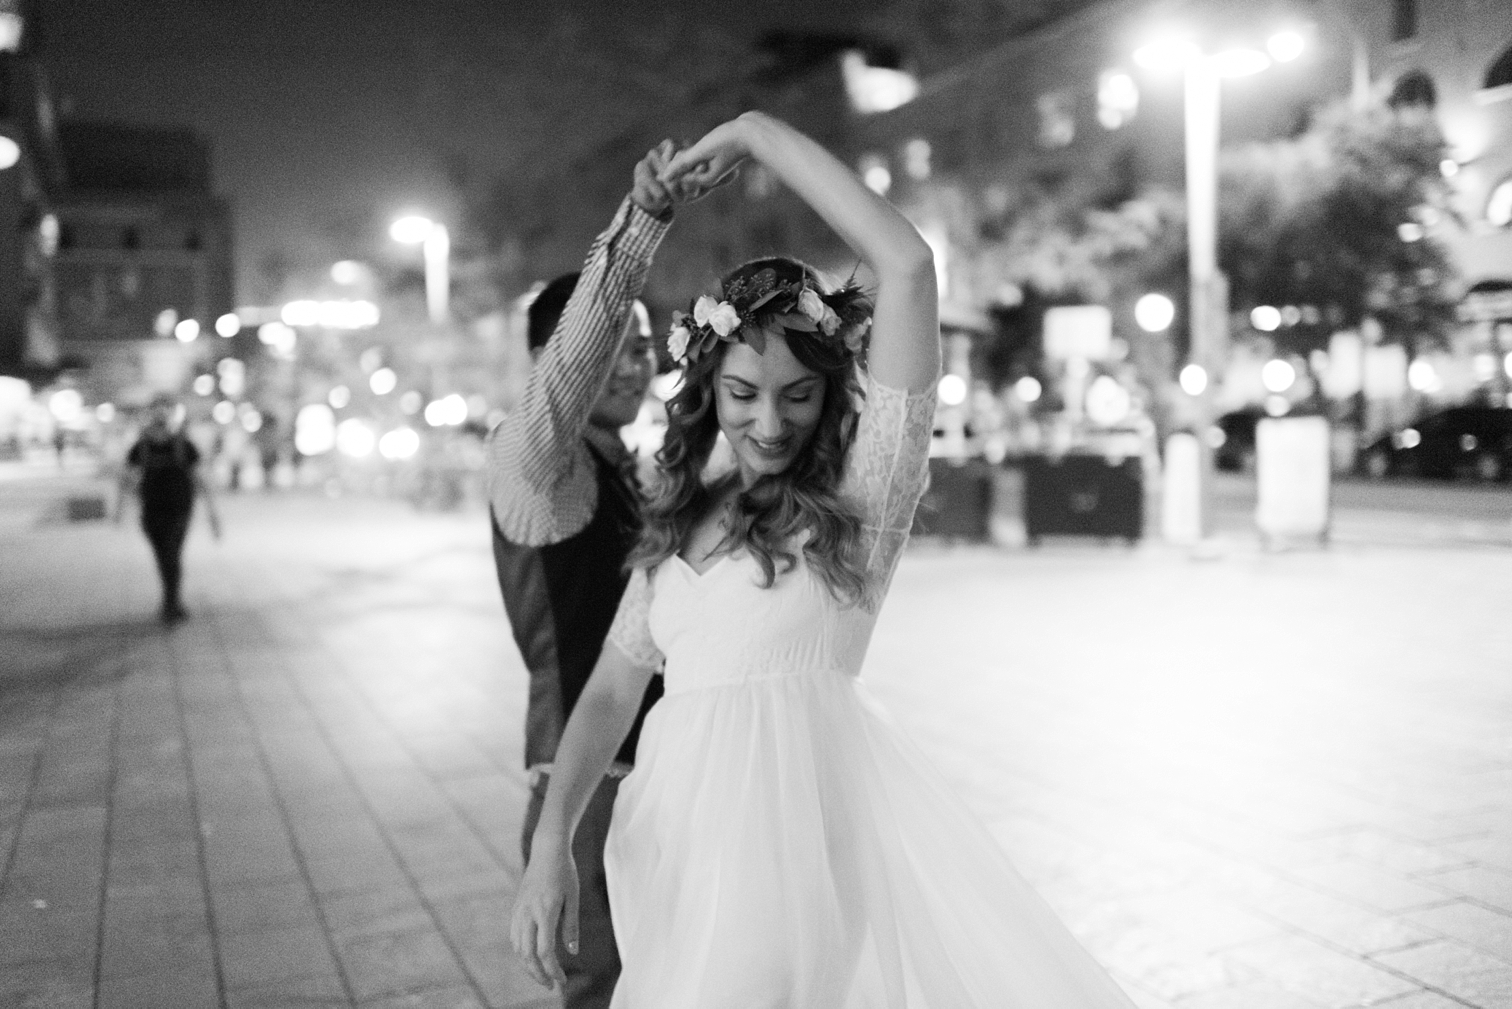 Bride Groom Dancing, Colorado Photographers, Best Destination Weddings, Danielle DeFiore Photography